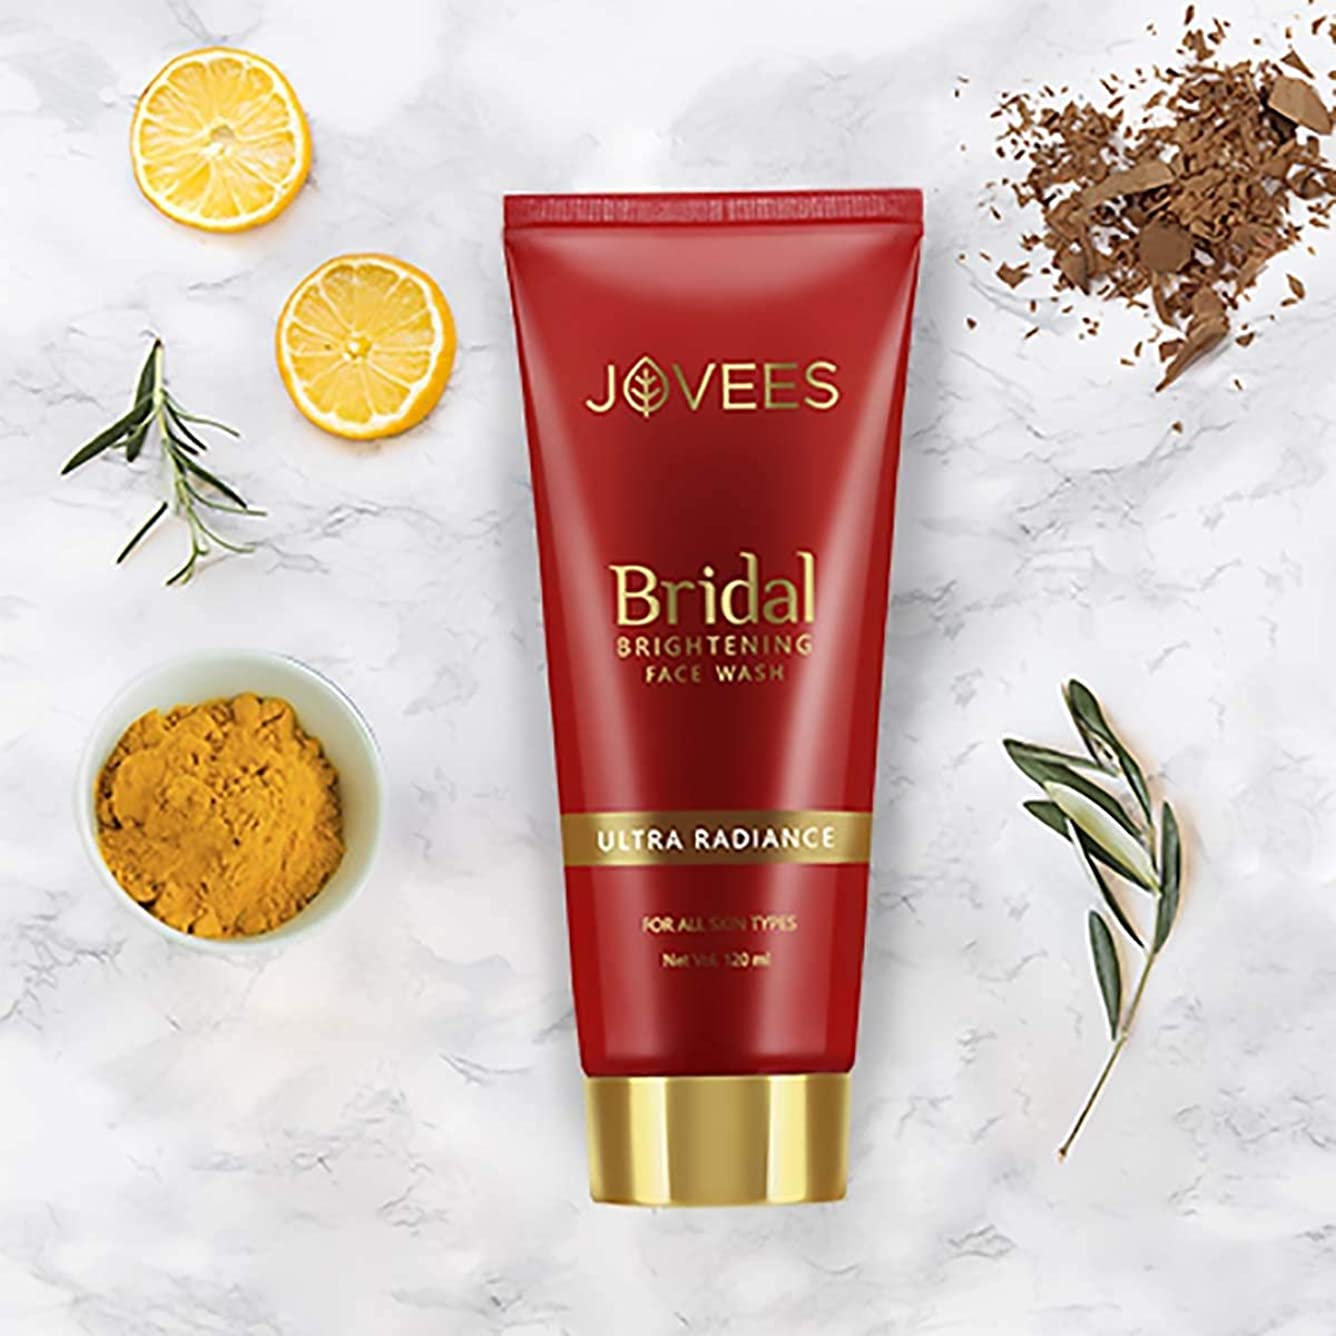 チェス基礎社員Jovees Bridal Brightening Face Wash 120ml Ultra Radiance Even & brighter complex